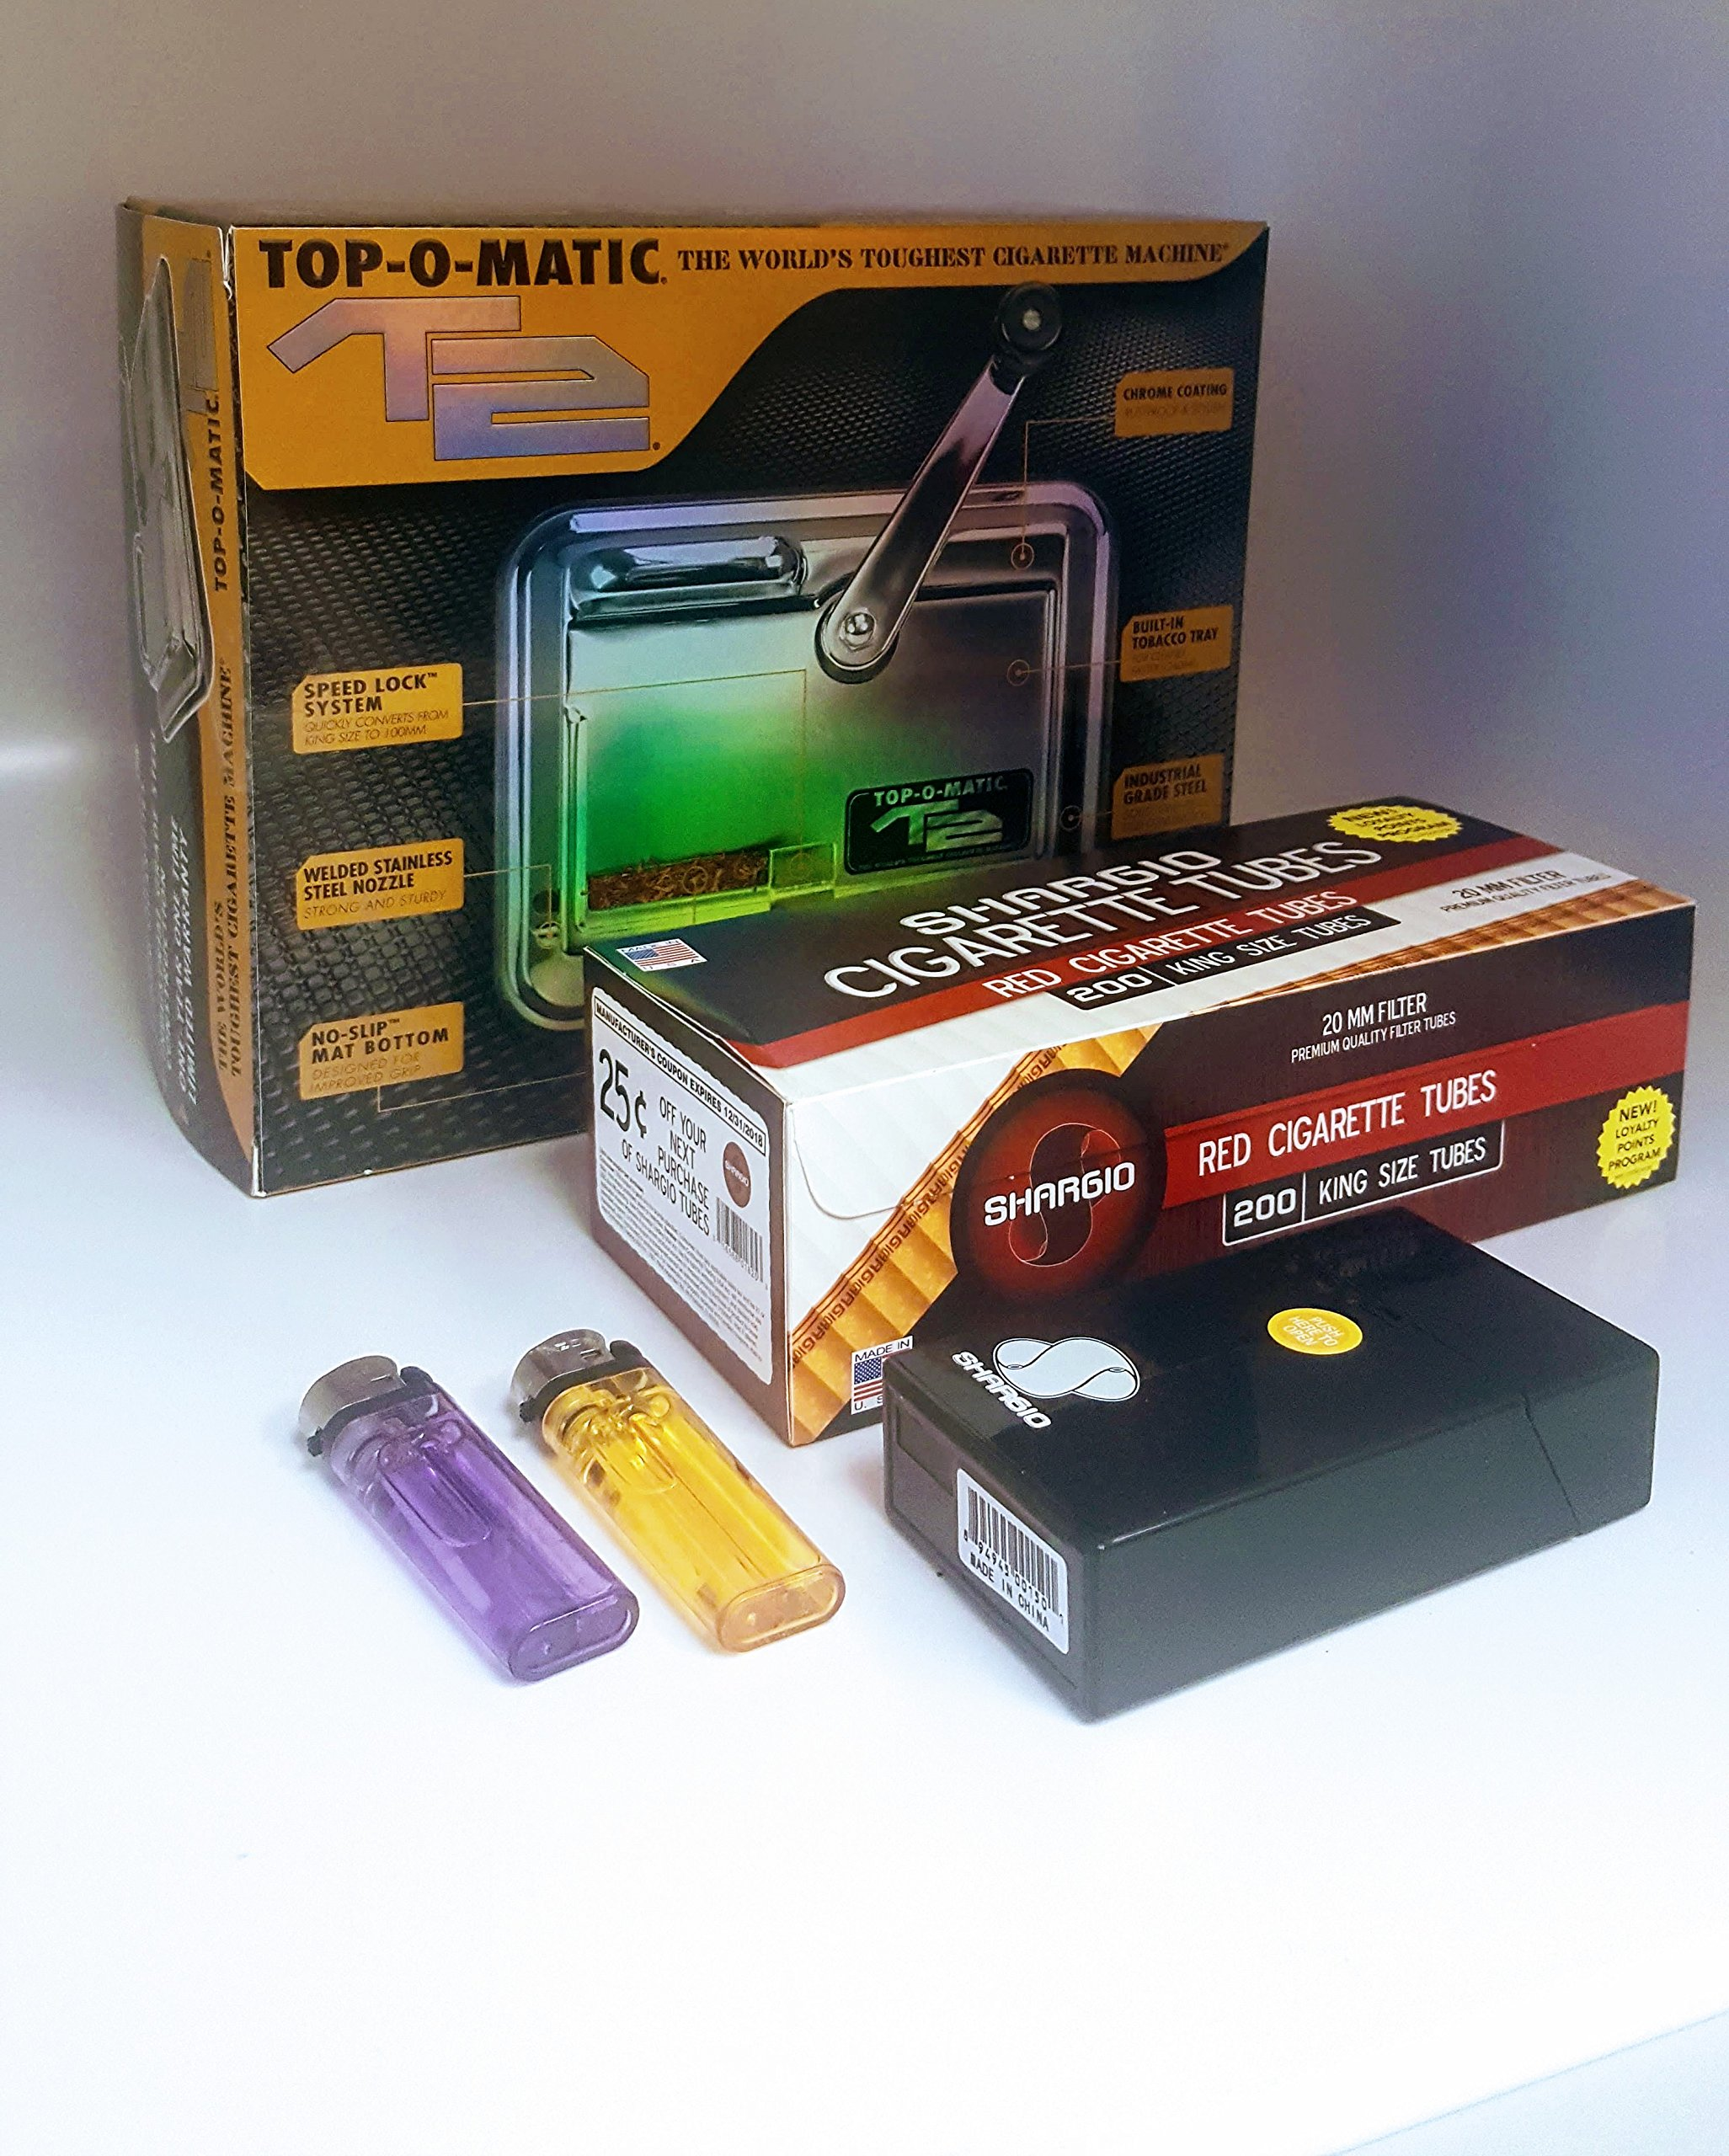 T2 Top-O-Matic Cigarette Rolling Machine+ FREE Shargio tubes, Case & lighters by TOP